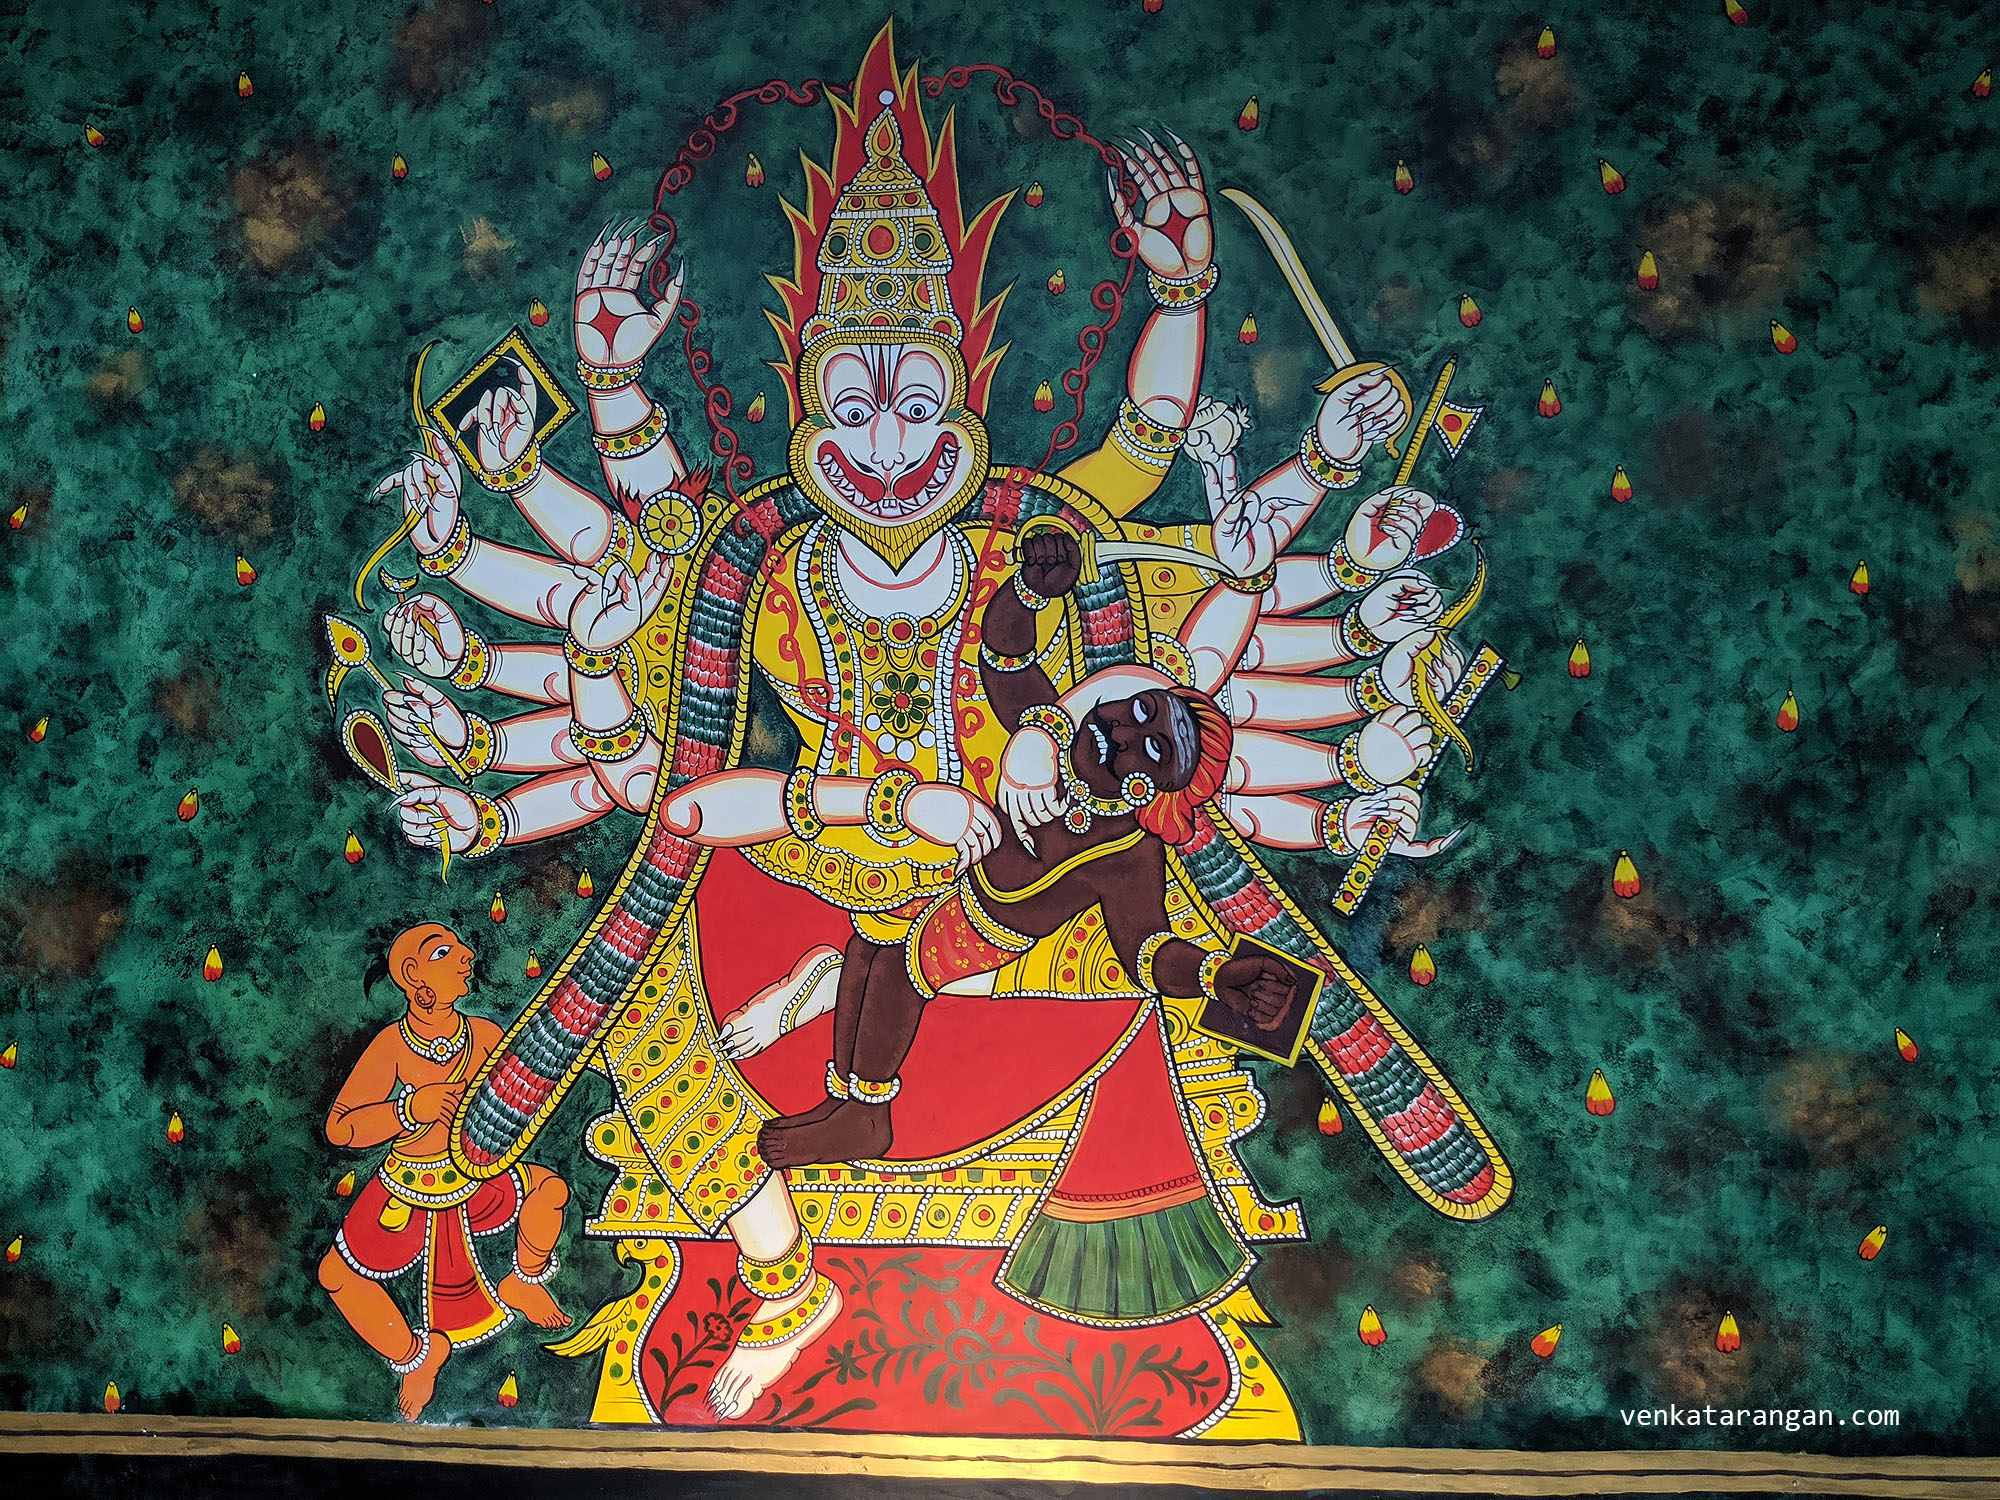 Dasavaratharam - 4. The Narasimha (The half lion and The half human) is represented by a hand-painted mural. The mural is just feets away from the main entrance equidistance from the outside and the inside as in the mythology.